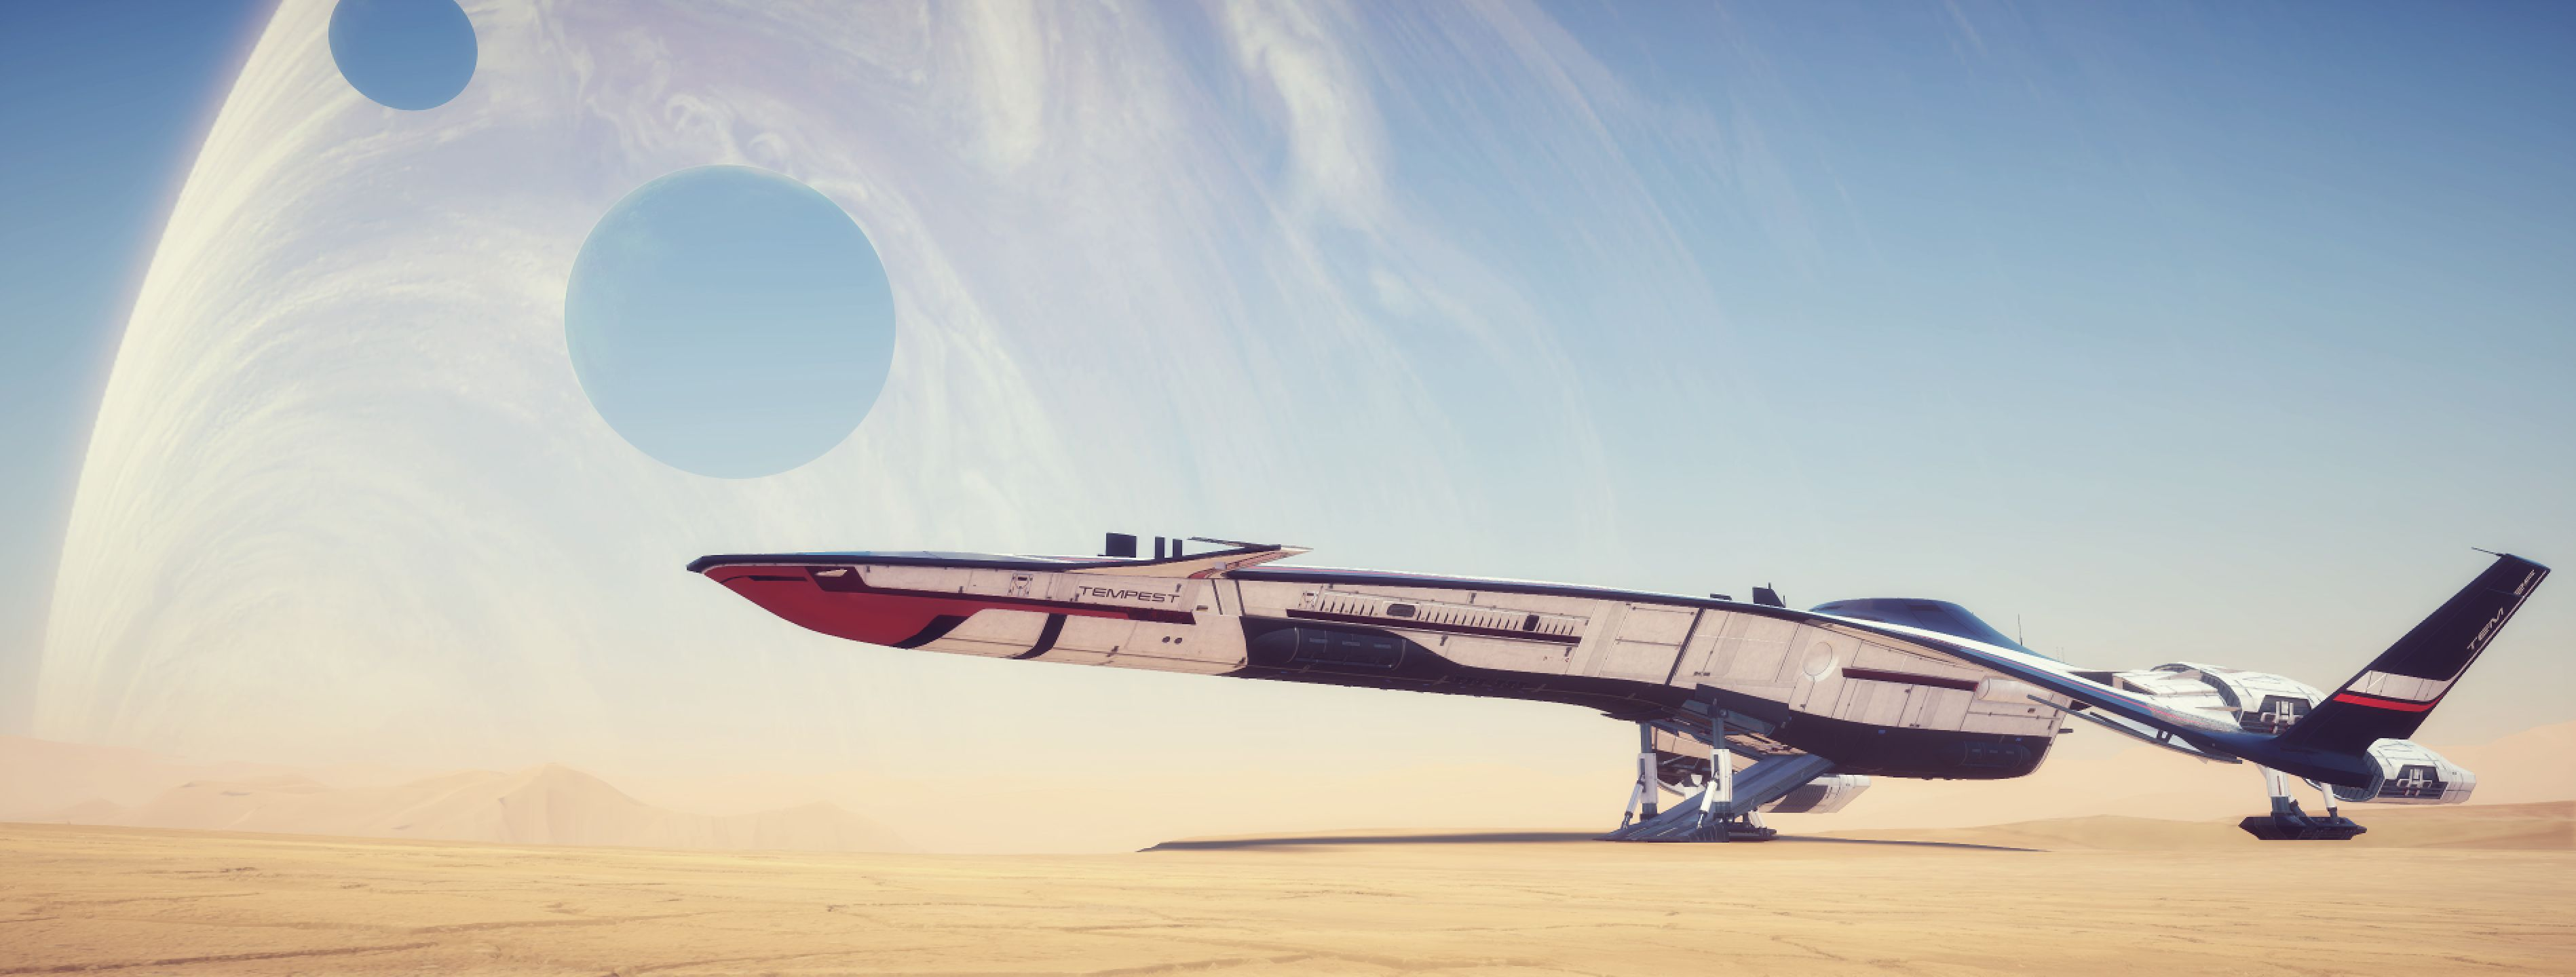 The Art And Science Of Making A Believable Sci Fi Spaceship